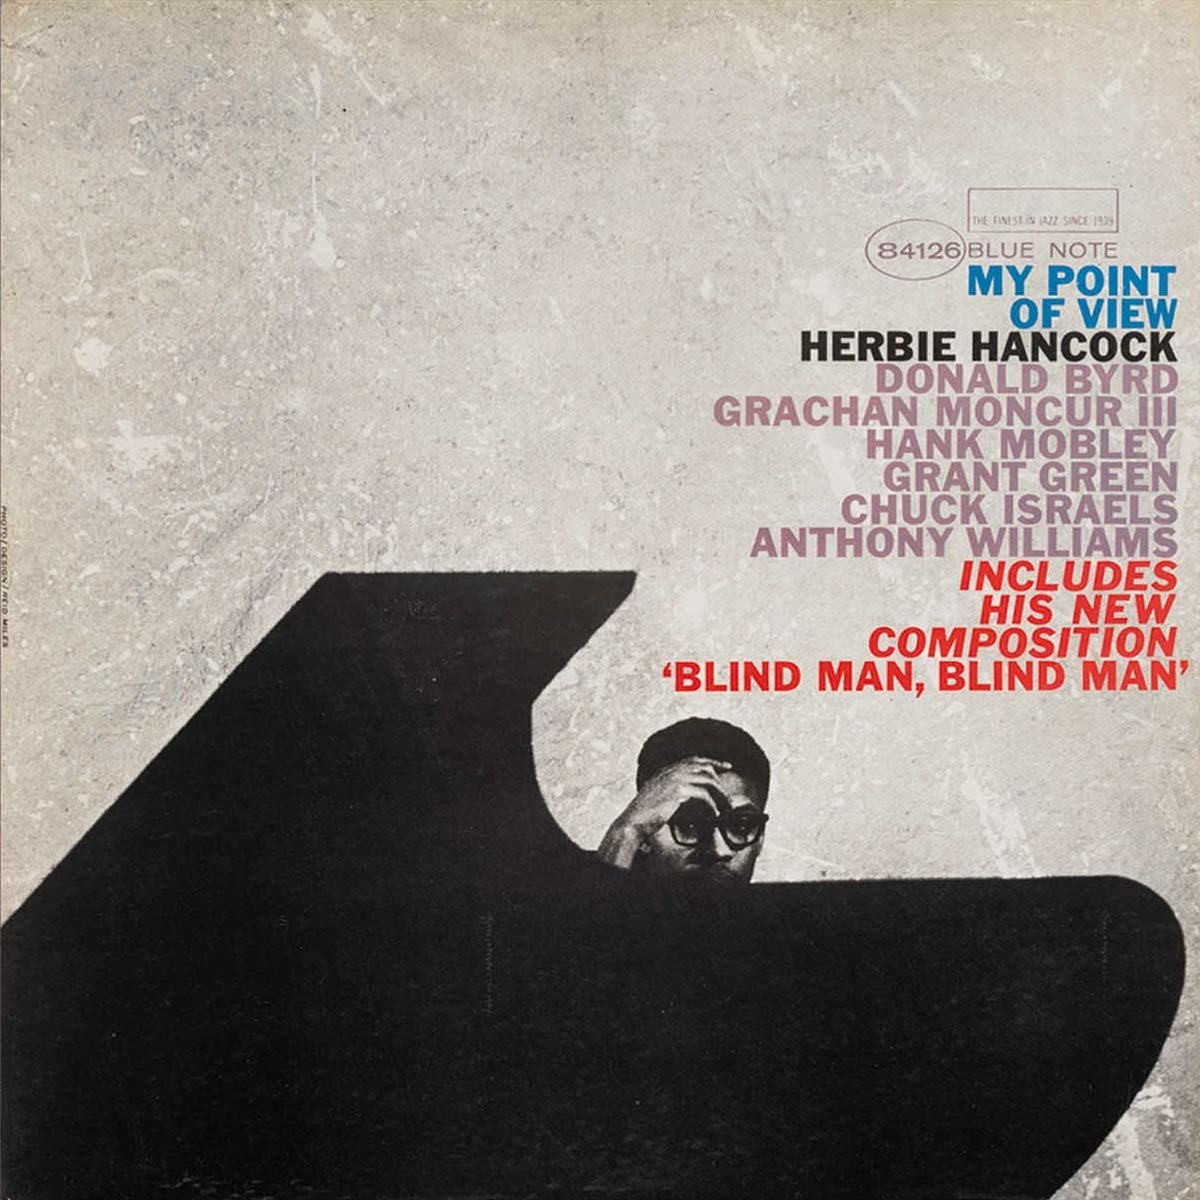 My Point of View - Herbie Hancock - Musik - BLUE NOTE - 0602508811333 - 30/10-2020